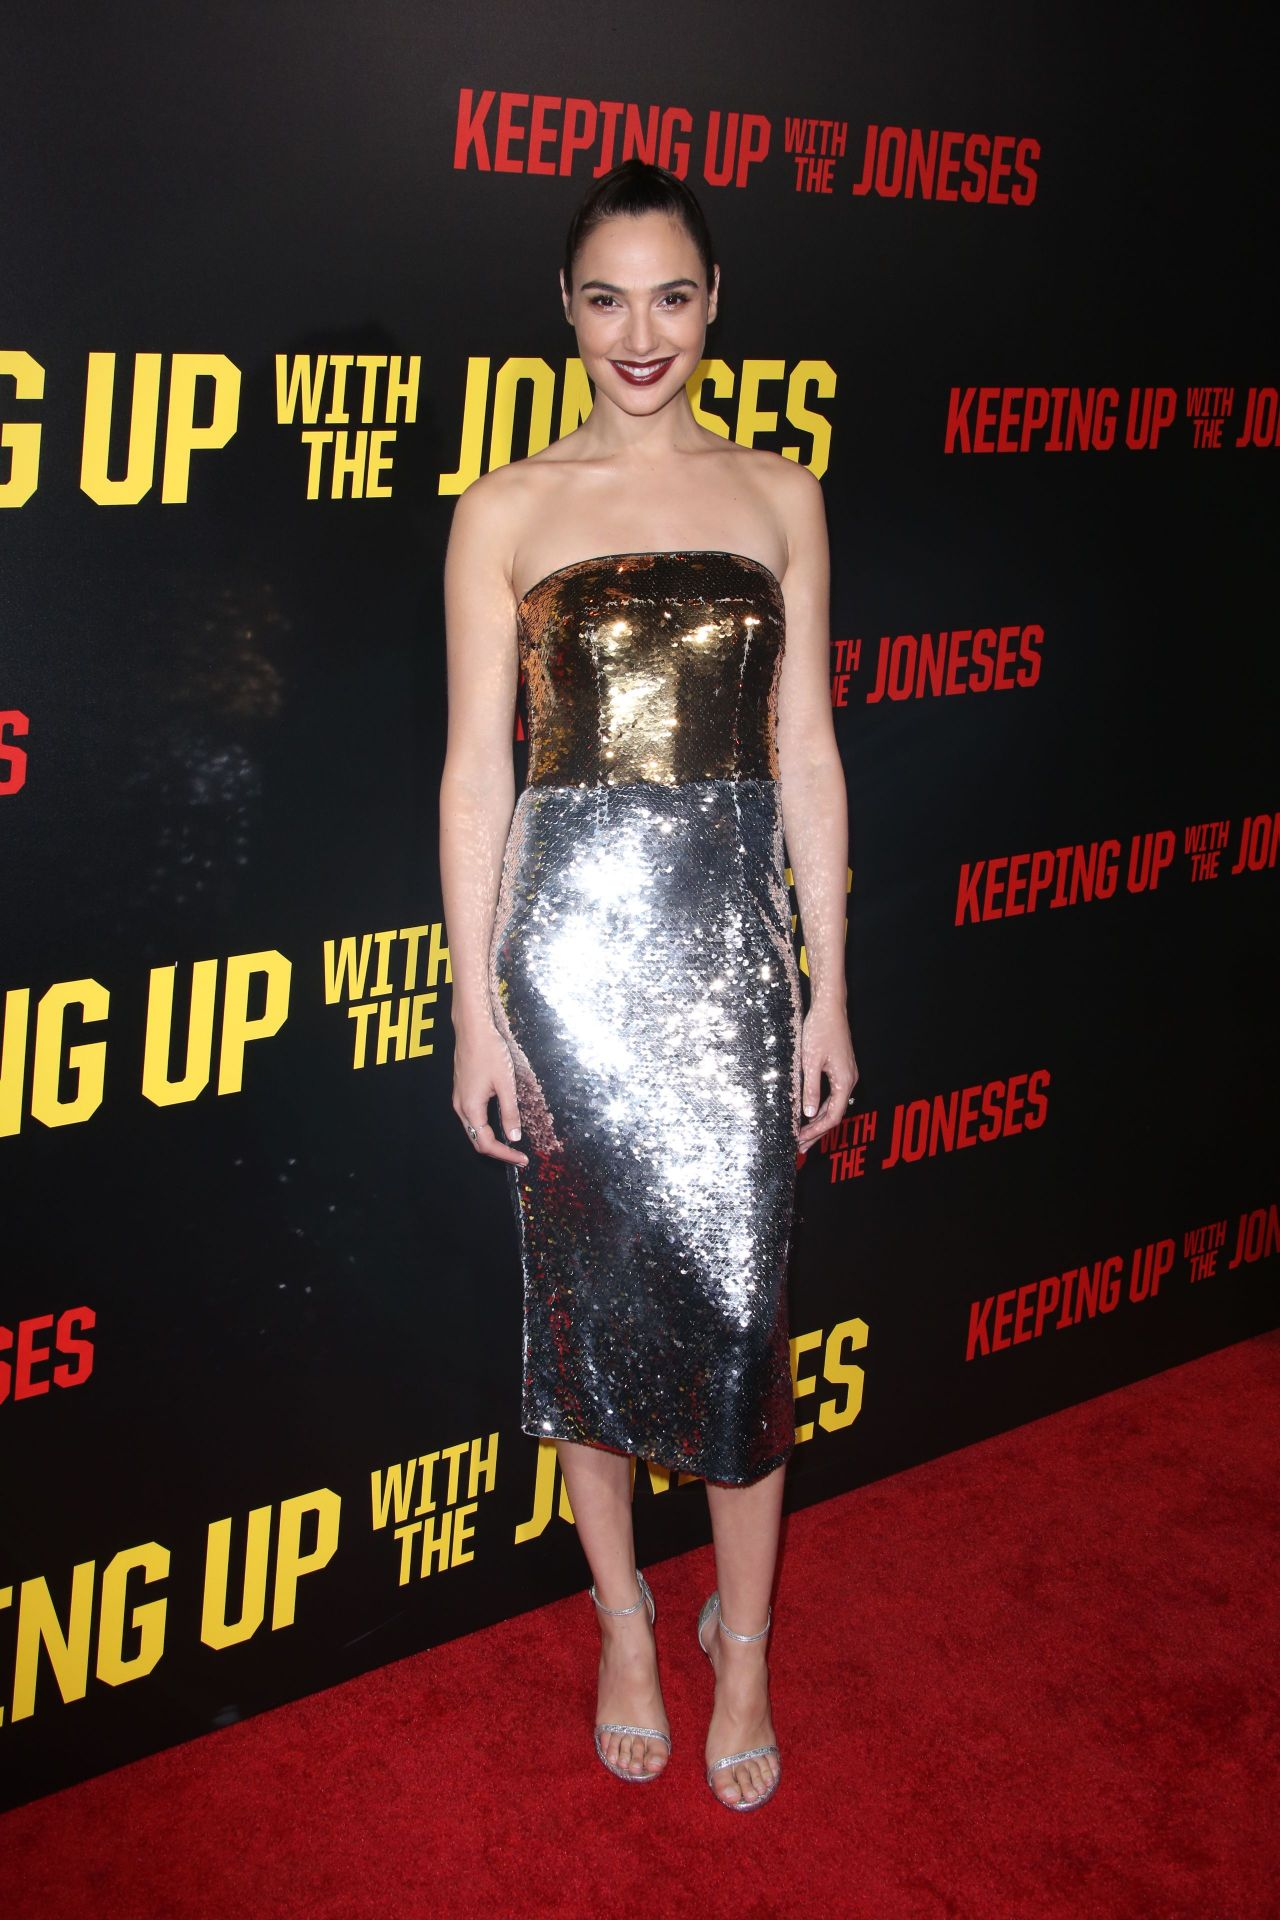 http://celebmafia.com/wp-content/uploads/2016/10/gal-gadot-keeping-up-with-the-joneses-premiere-in-los-angeles-10-8-2016-3.jpg